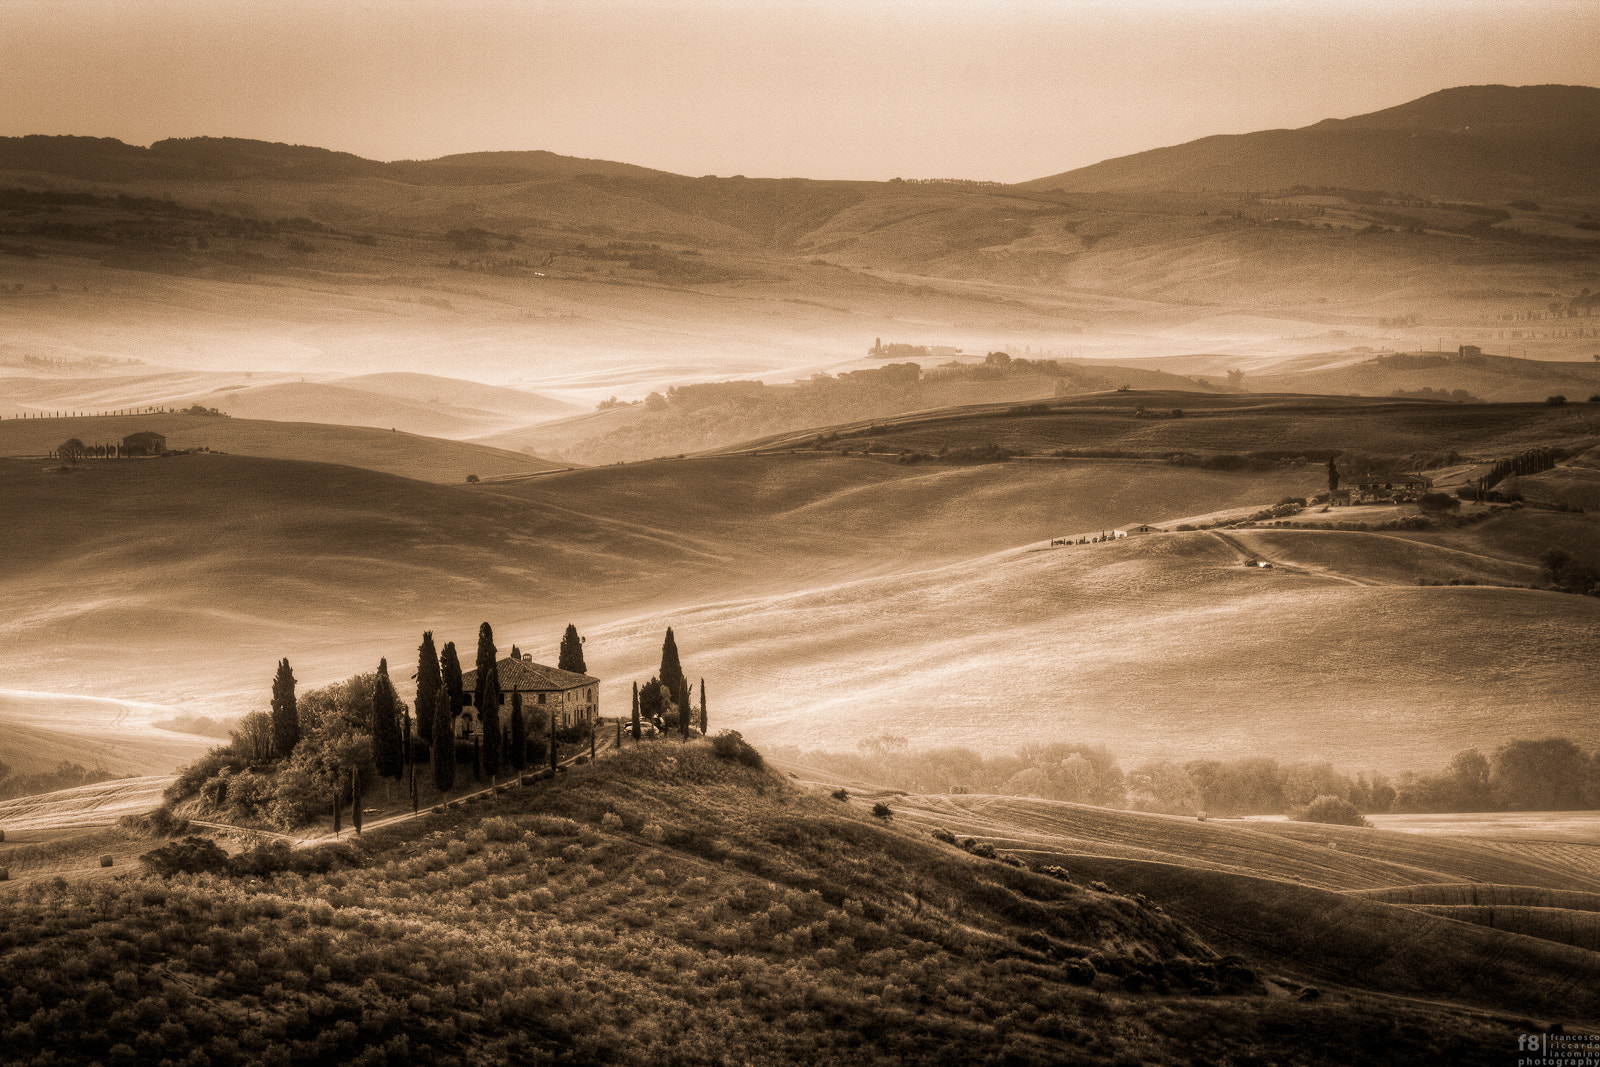 Photograph Timeless by Francesco Riccardo Iacomino on 500px